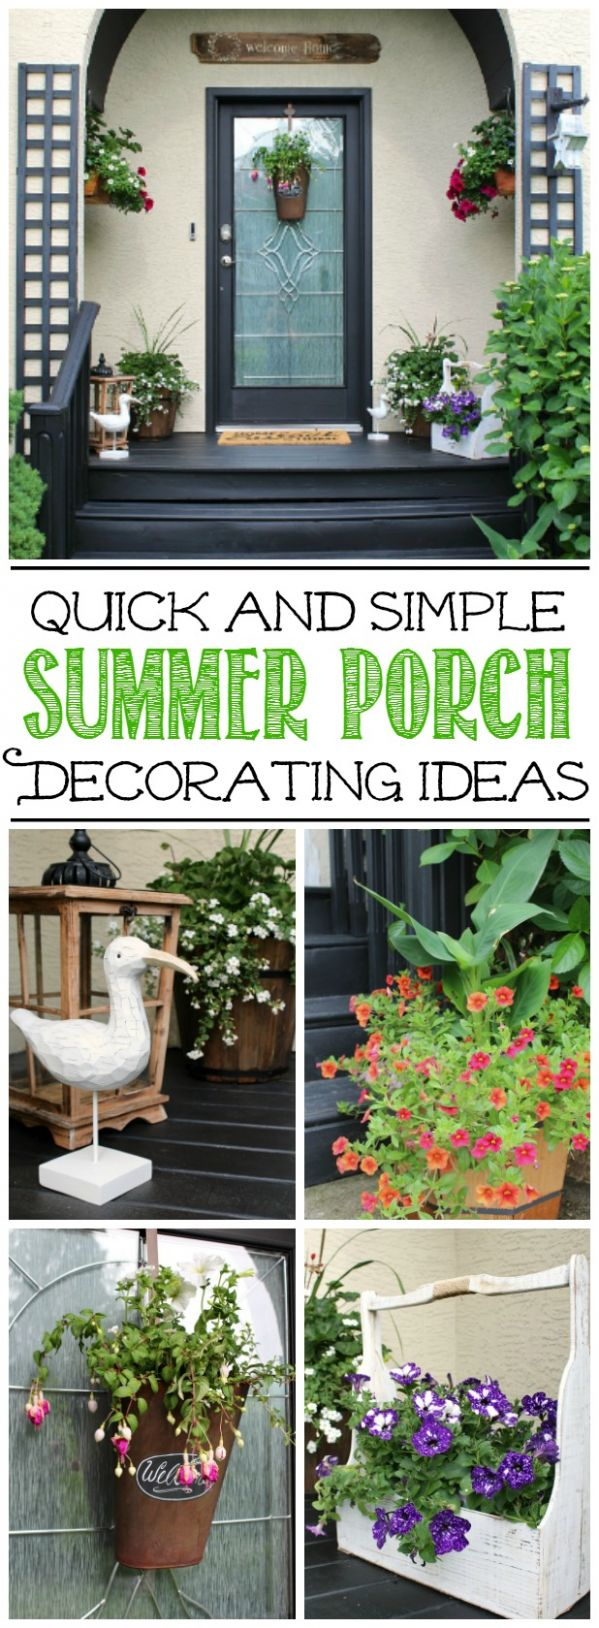 Summer Front Porch Decorating Ideas - Clean and Scentsible - front porch decor ideas for summer